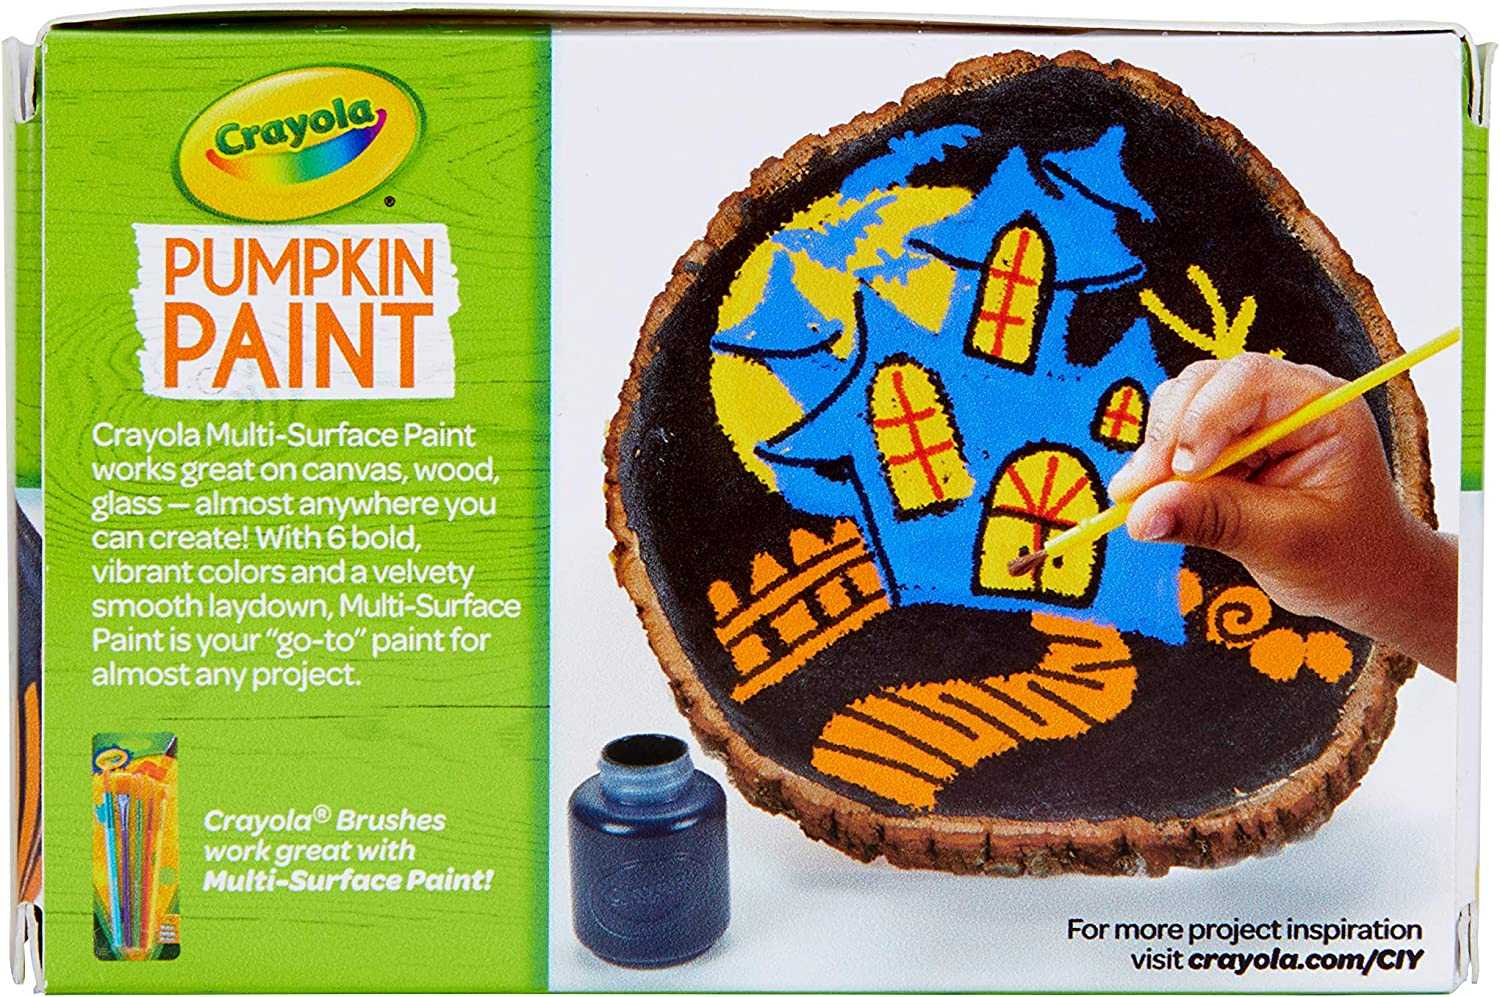 Crayola Pumpkin Paint Kit, Acrylic Paints in Classic Colors, Halloween Decorations, 6Count: Toys & Games